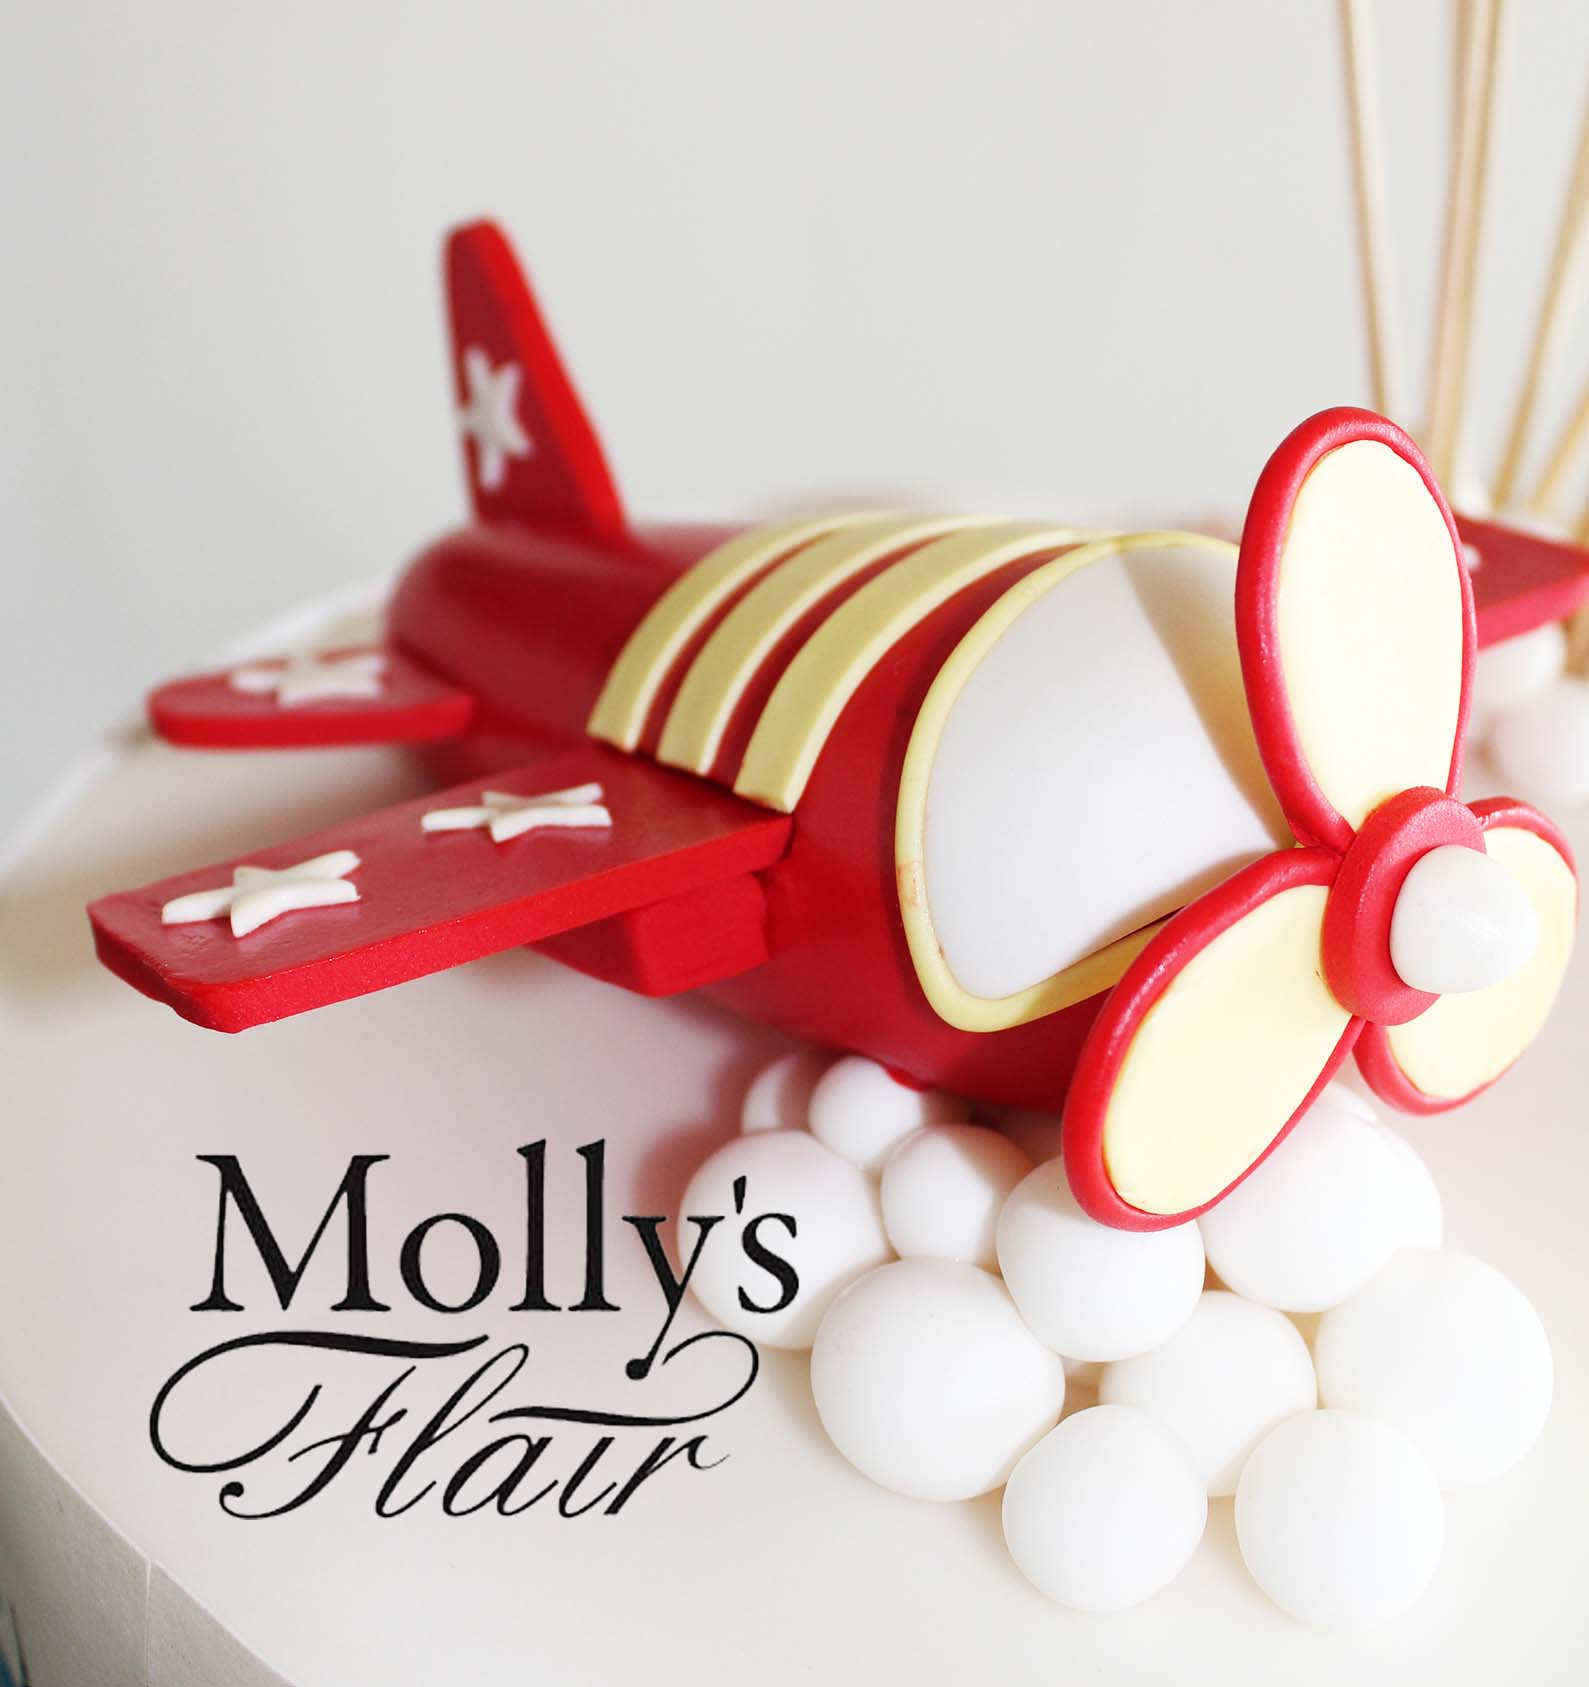 Red fondant airplane topper